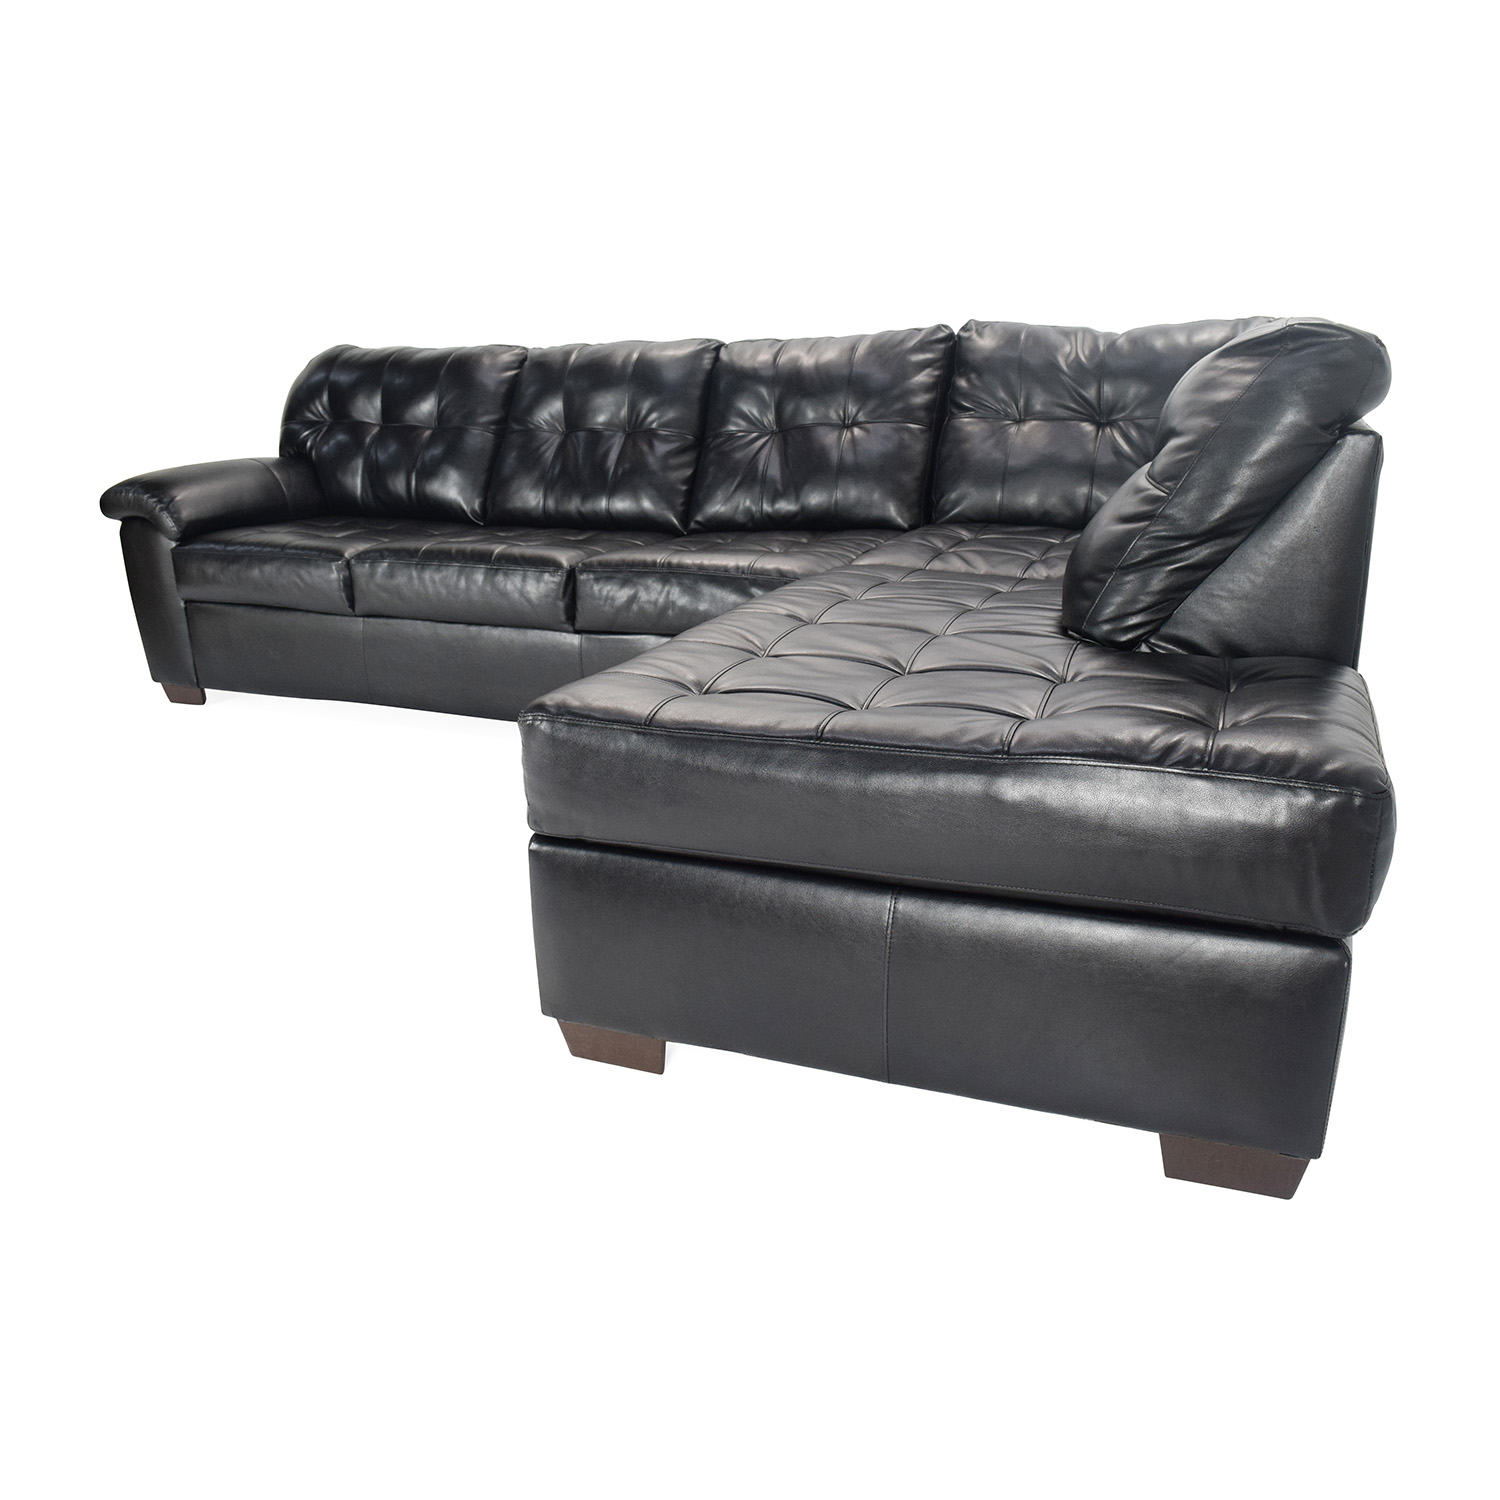 51 OFF  Bobs Furniture Black Faux Leather Sectional  Sofas